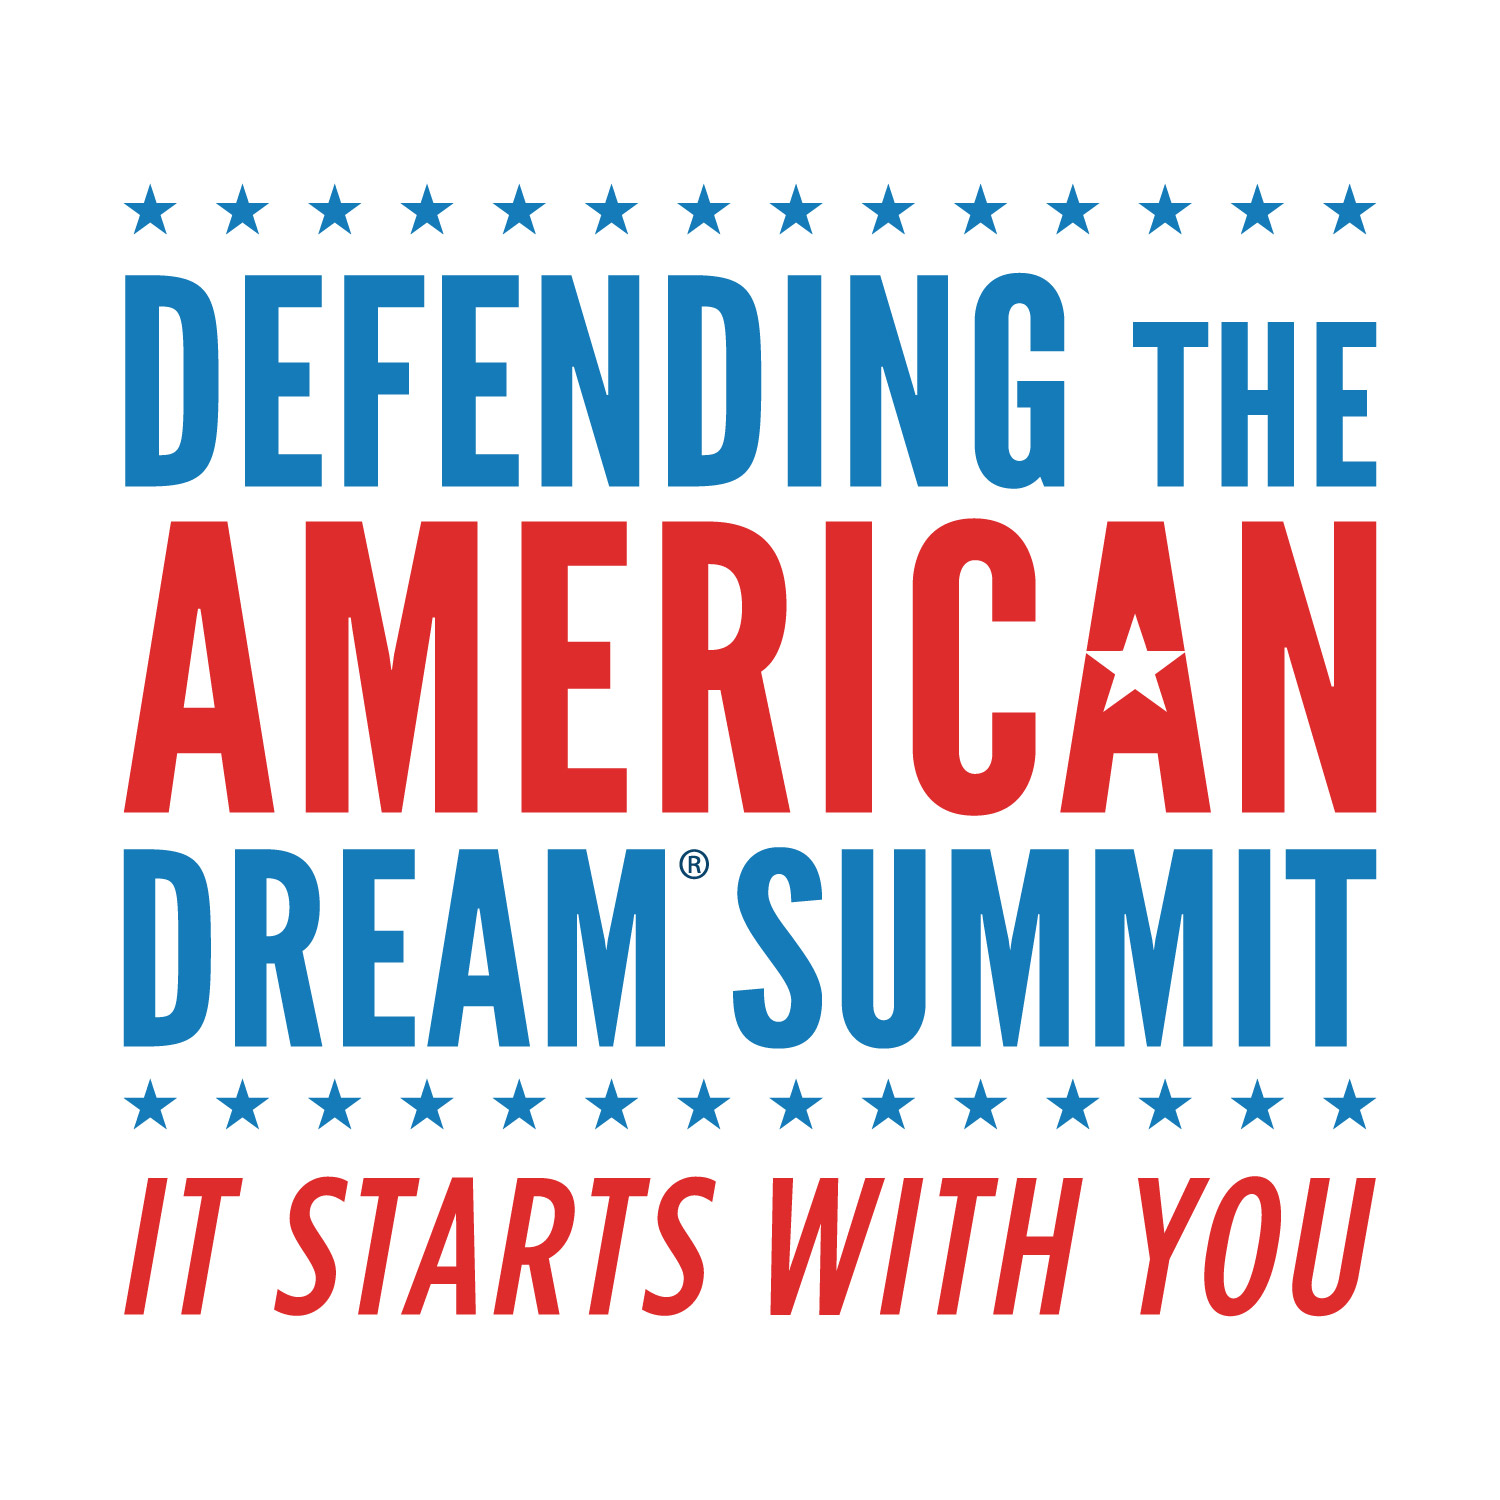 Defending the American Dream Summit 2016